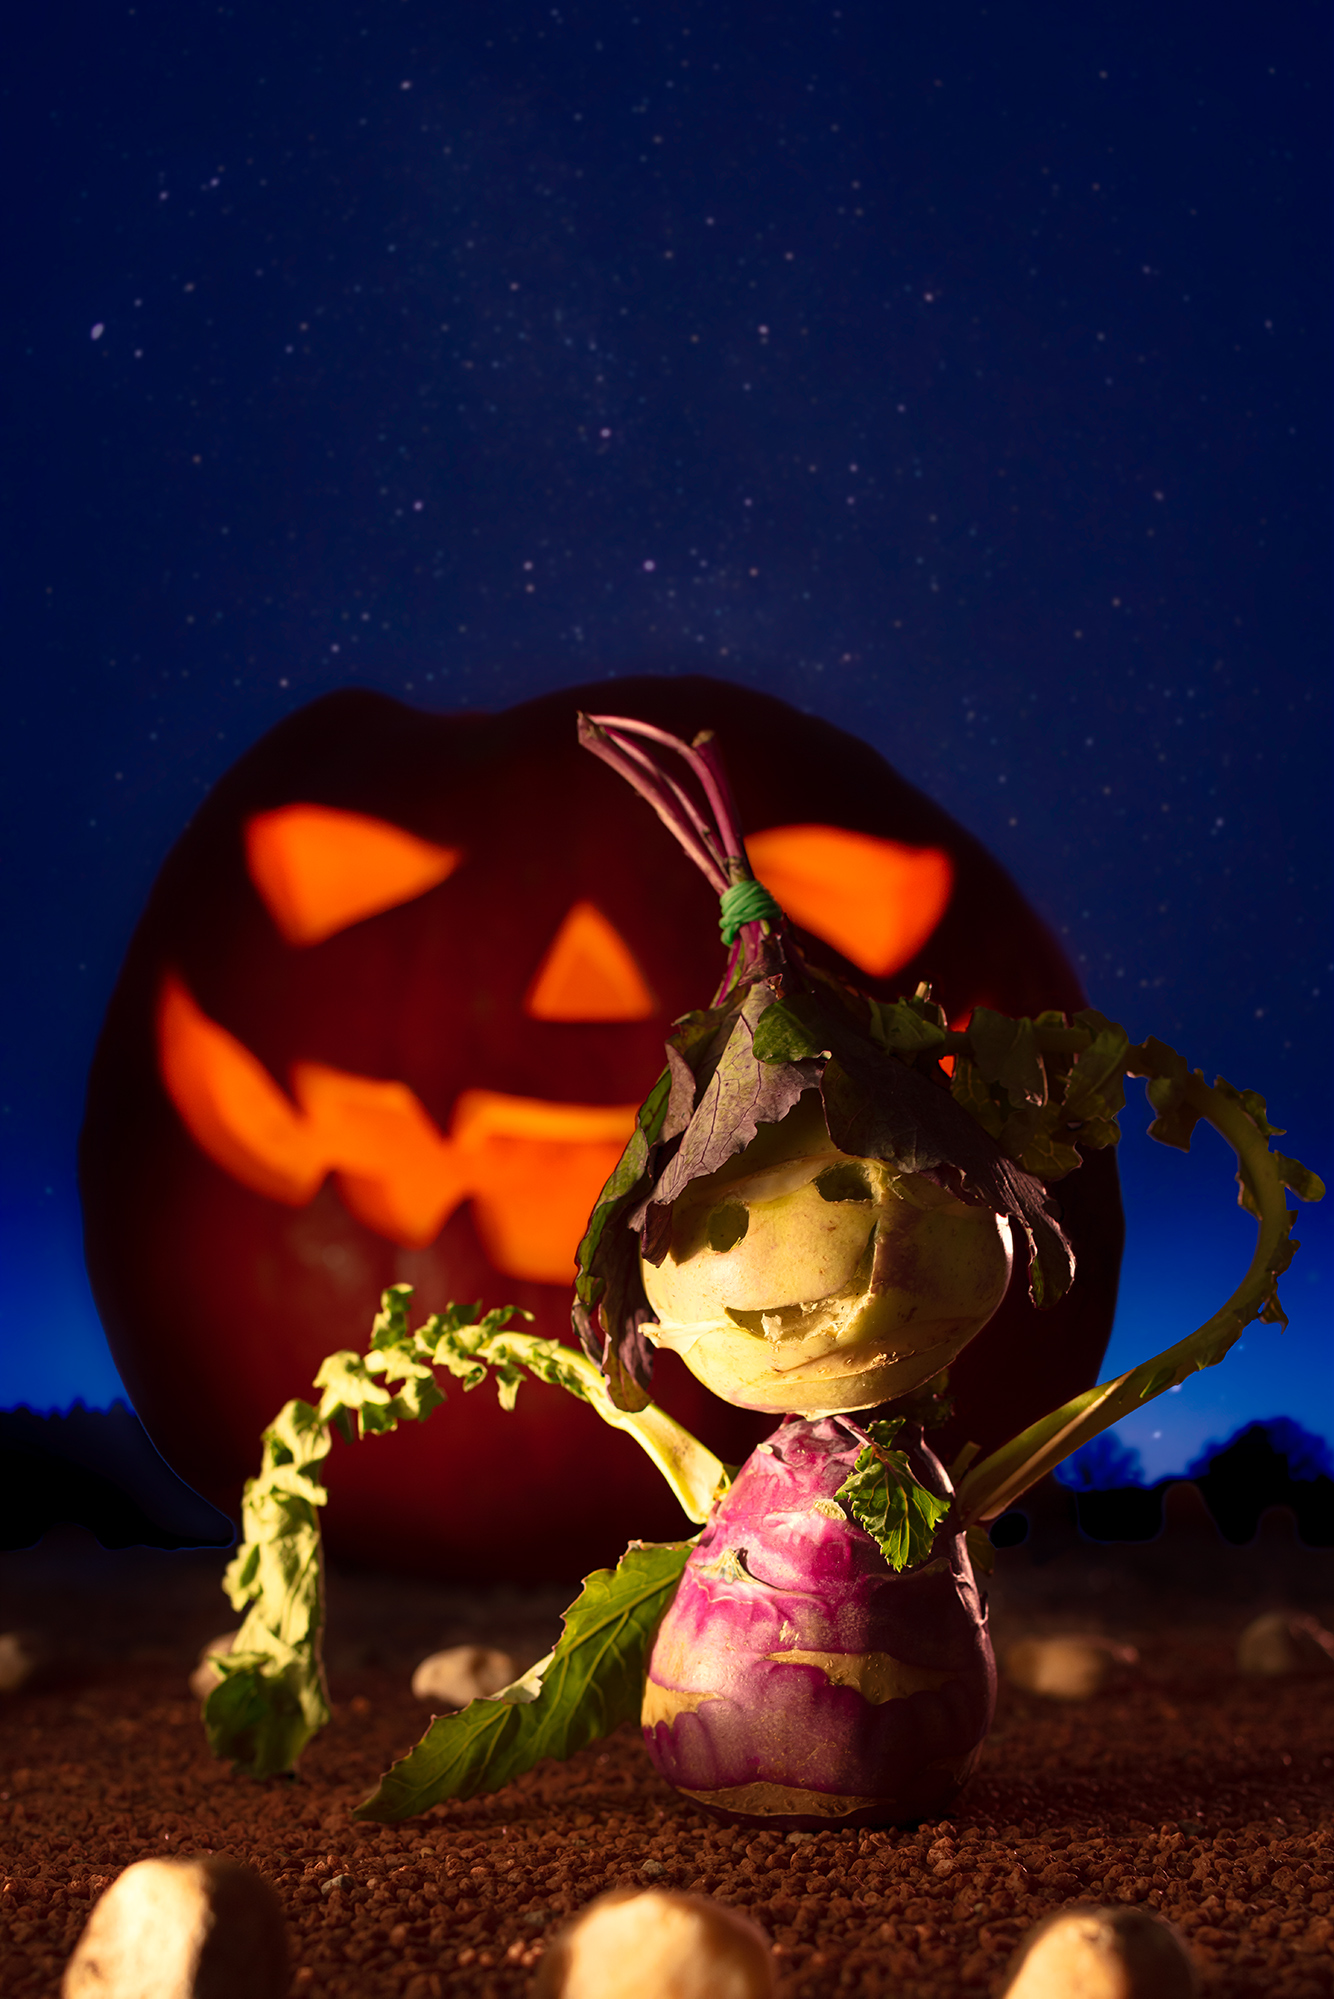 A figure made out of a turnip with a hat made out of leaves is shown in front of a lit pumpkin with carved out face.